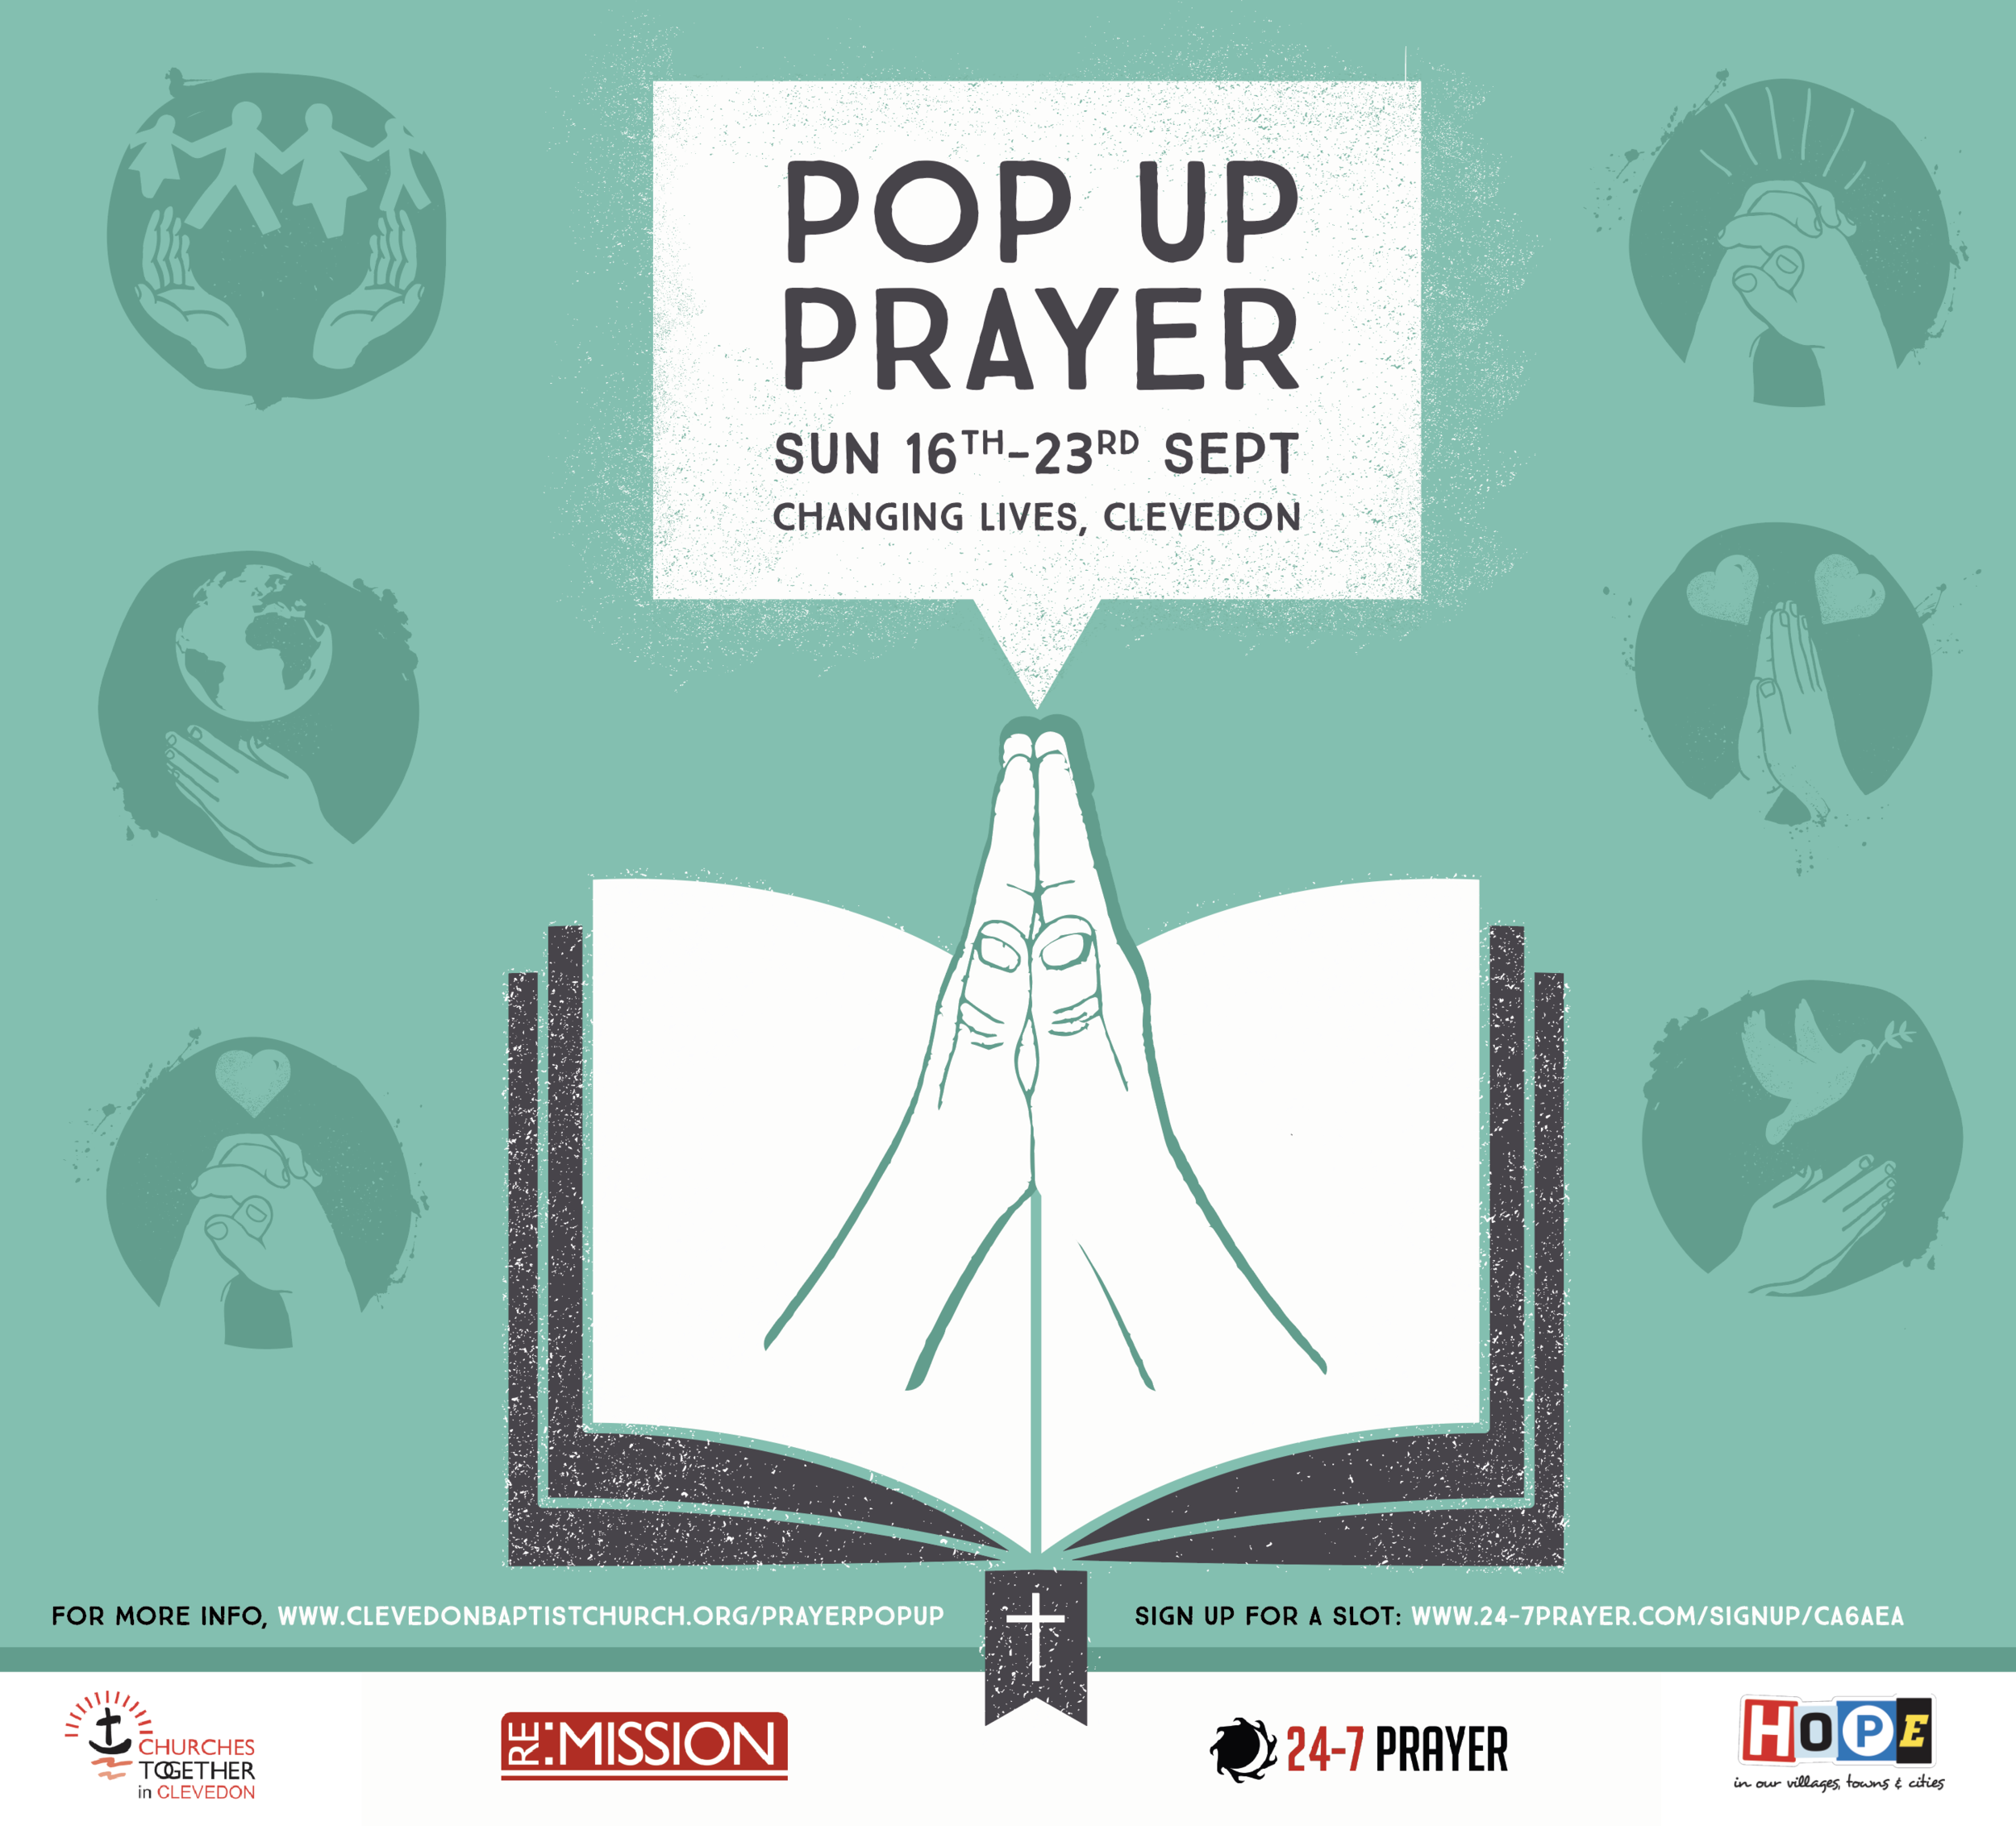 Events — Churches Together in Clevedon